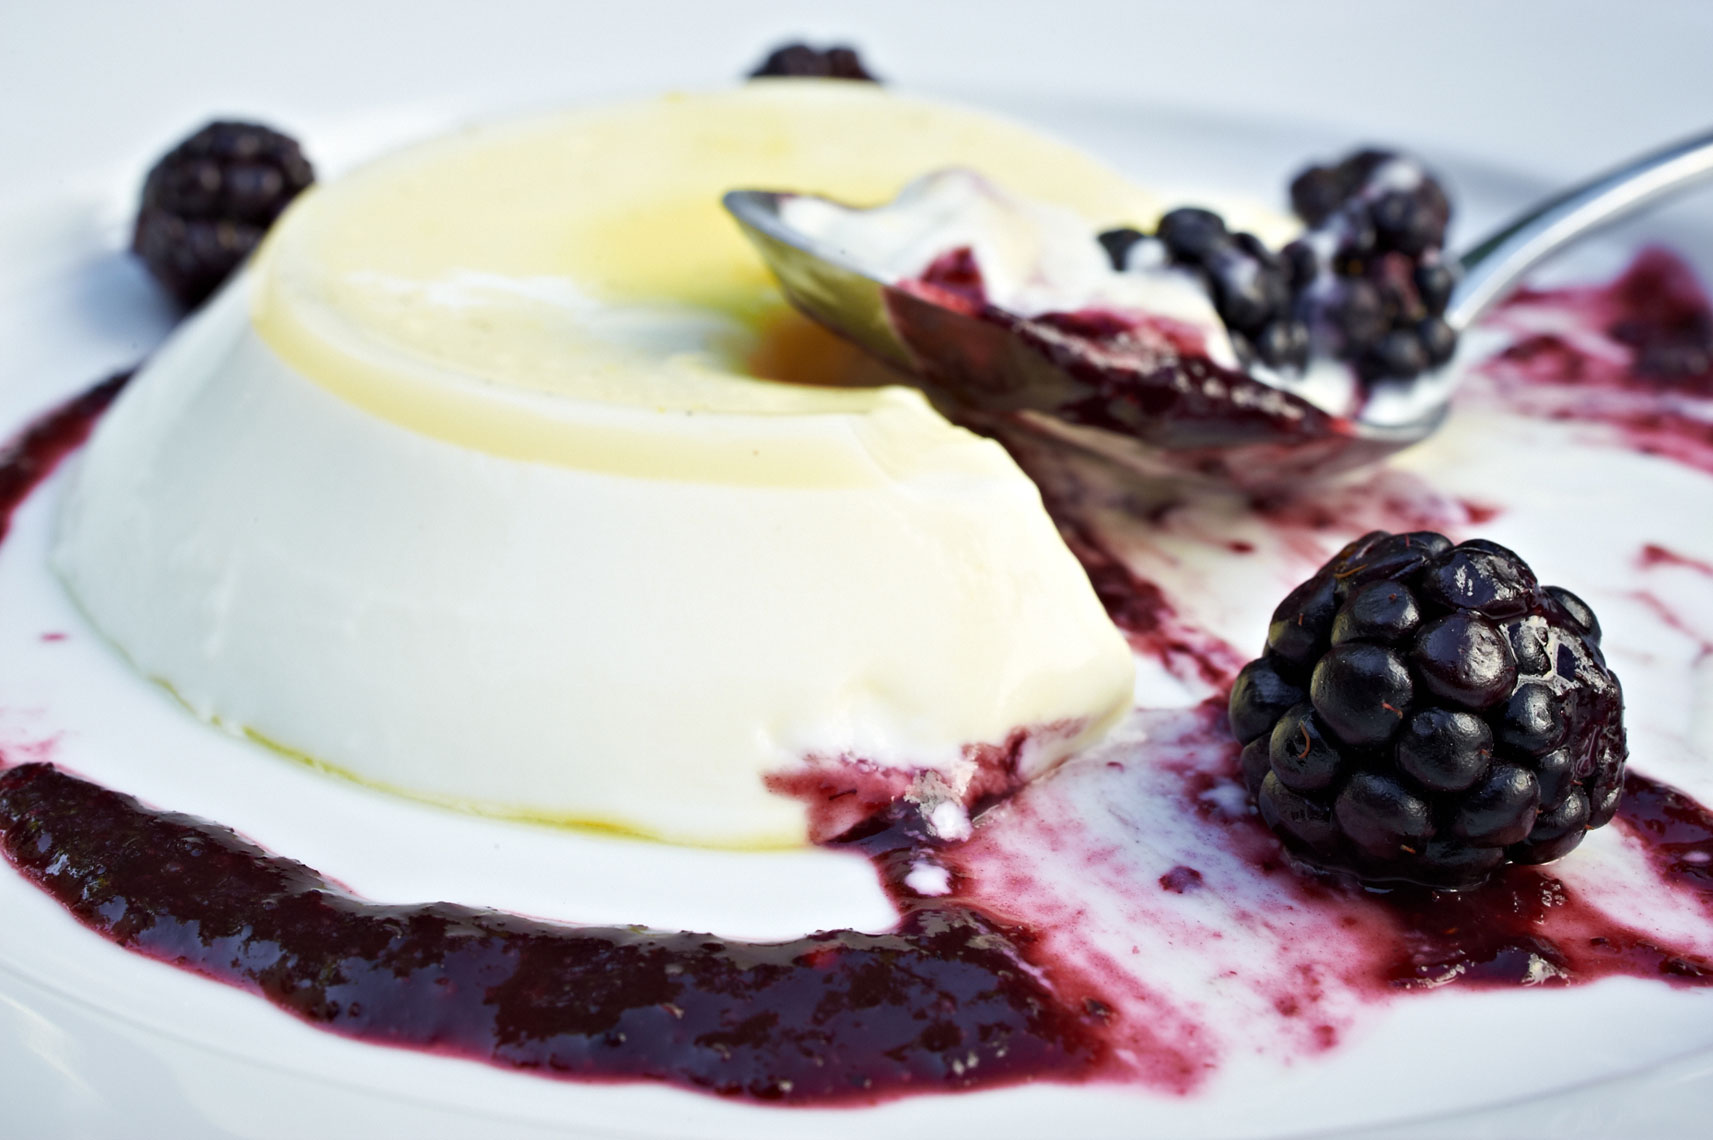 Ragazza, Lemon Blackberry Panna Cotta